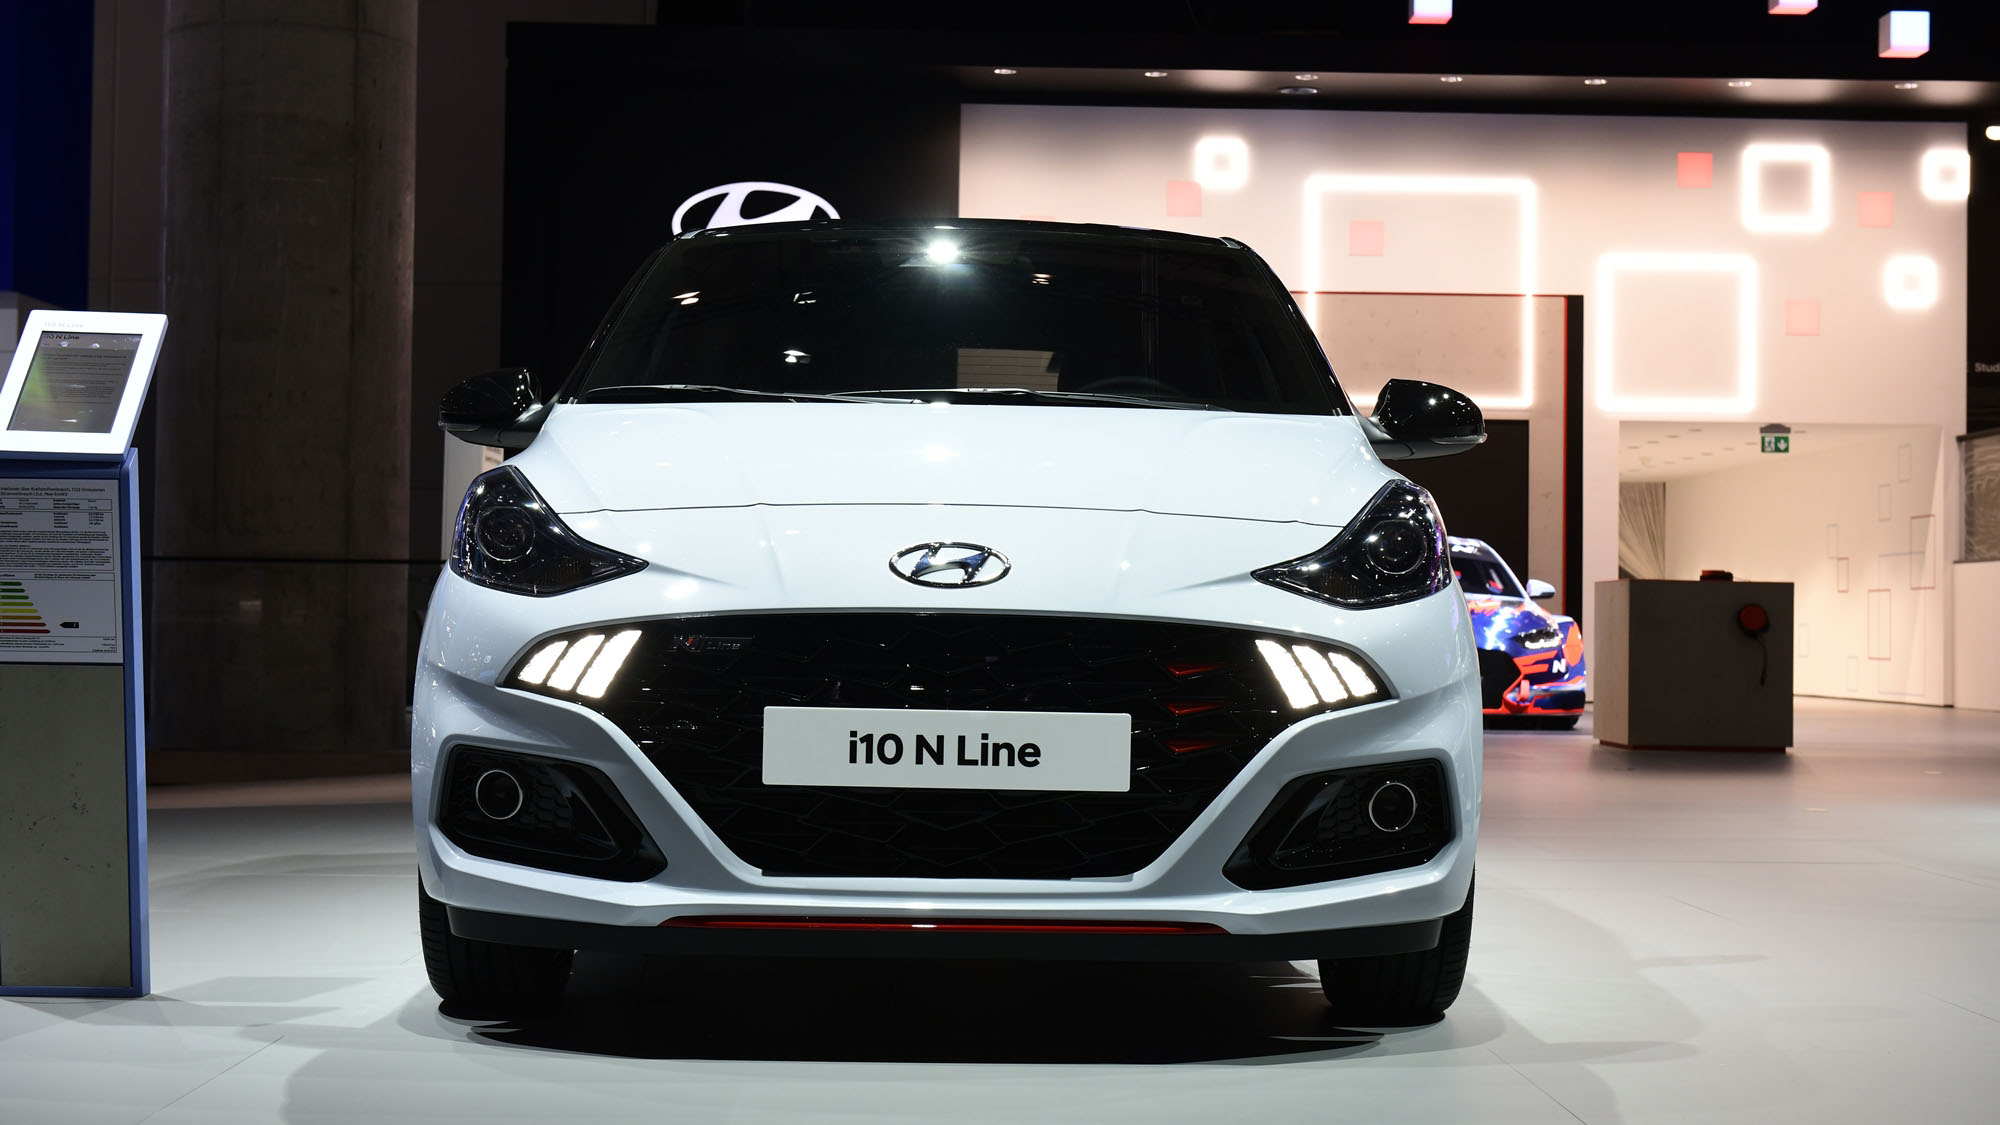 Hyundai Certified Pre Owned >> 2020 Hyundai i10 debuts, and a sporty N-Line variant does, too | Autoblog